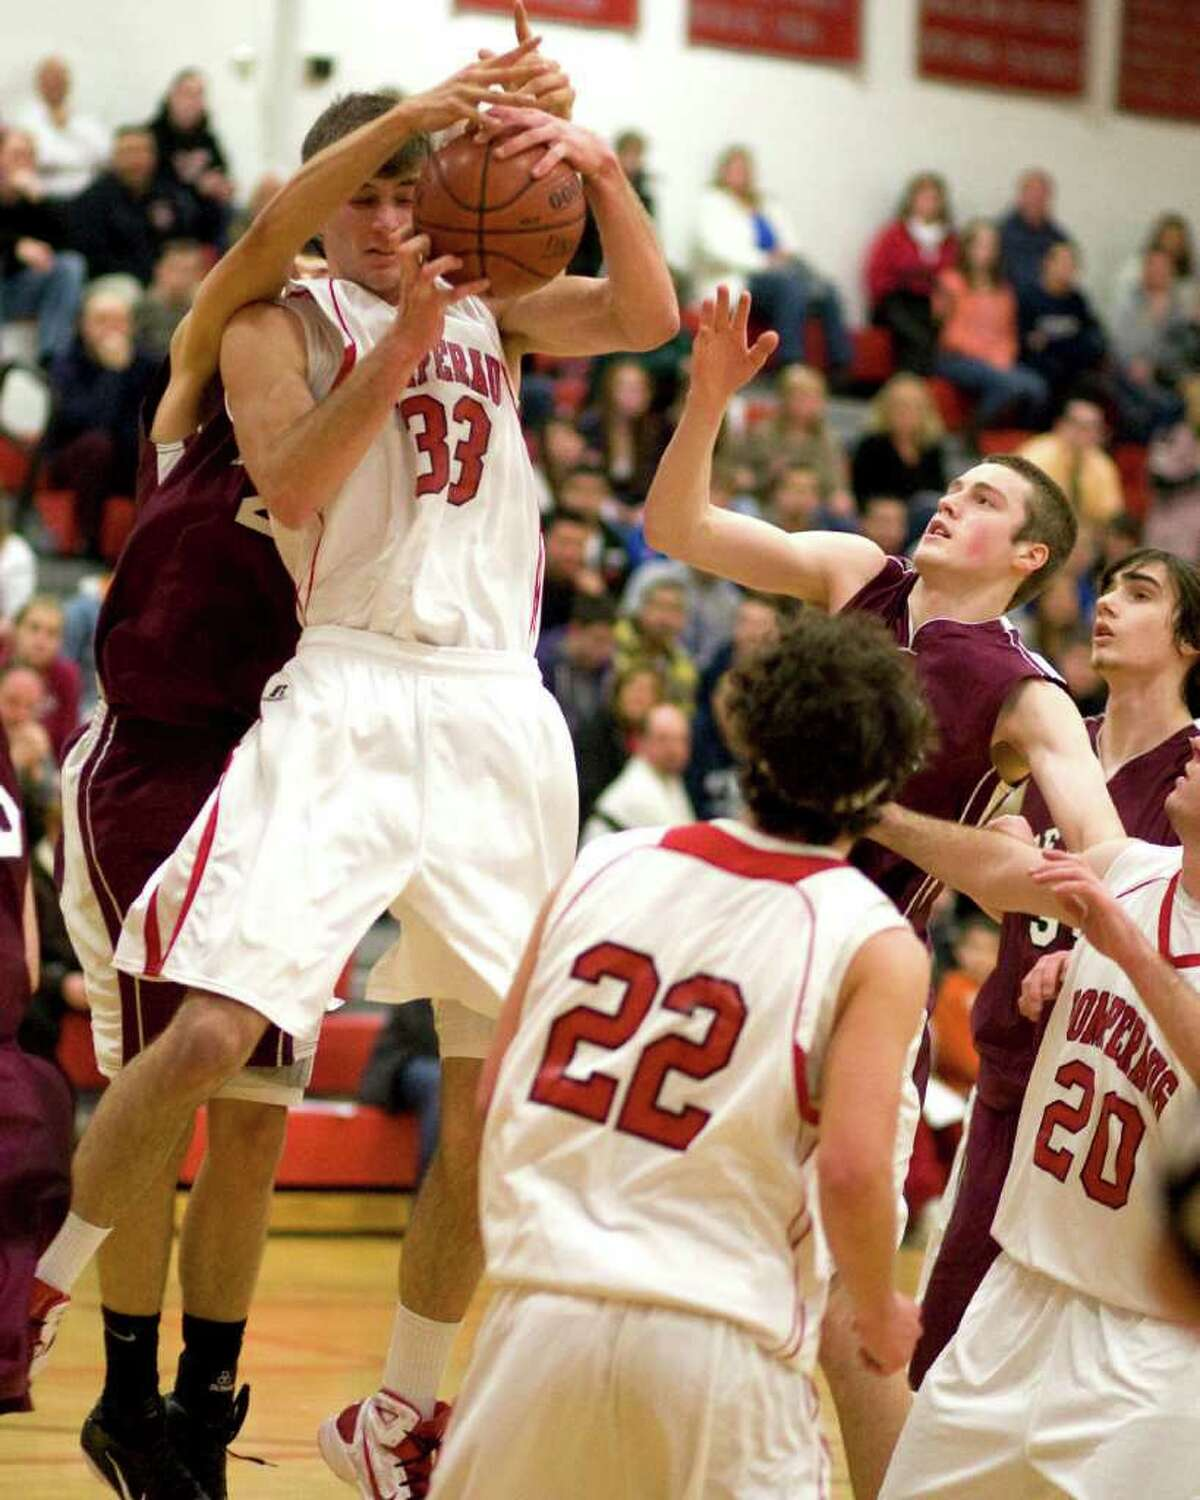 Pomperaug's 6-8 Andre Makris (33) is fouled from behind while grabbing a rebound against Bethel Thursday night at Pomperaug High.